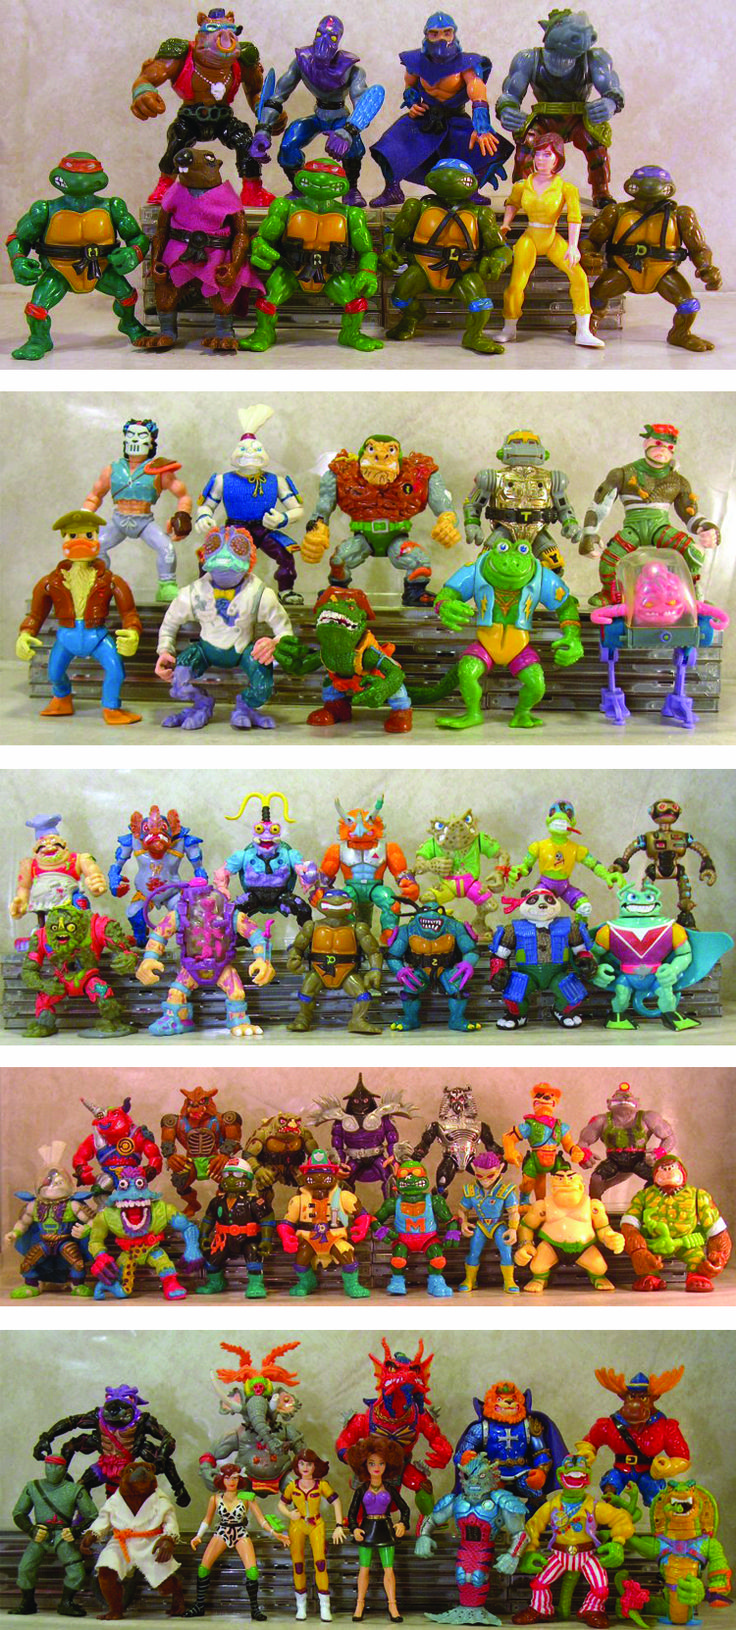 Past Play- Personalities- Story Teller and Collector. The reason that this form of past play has collector personality to it. Is because I constantly would collect action figures, Then i would execute different scenes with the figures which fits into the Story Teller personality trait.    Qualities of play: Voluntary I was never forced to play with action figures. I chose to play with them cause I enjoyed it. I enjoyed creating and executing my own scenes with them.     corefigures88to92